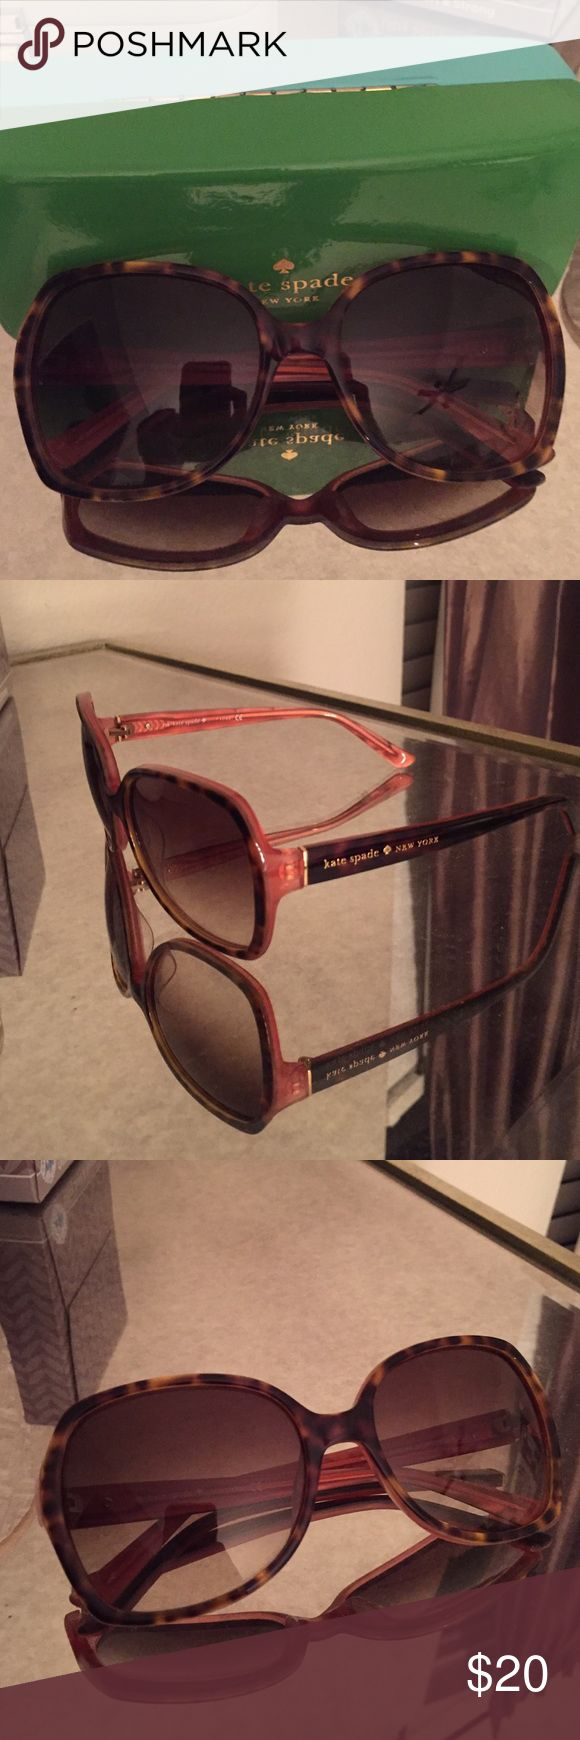 Kate Spade sunnies! Kate spade sunglasses with a brown tortoise and pink accent color. Says brand name on one side, comes with case. kate spade Accessories Sunglasses